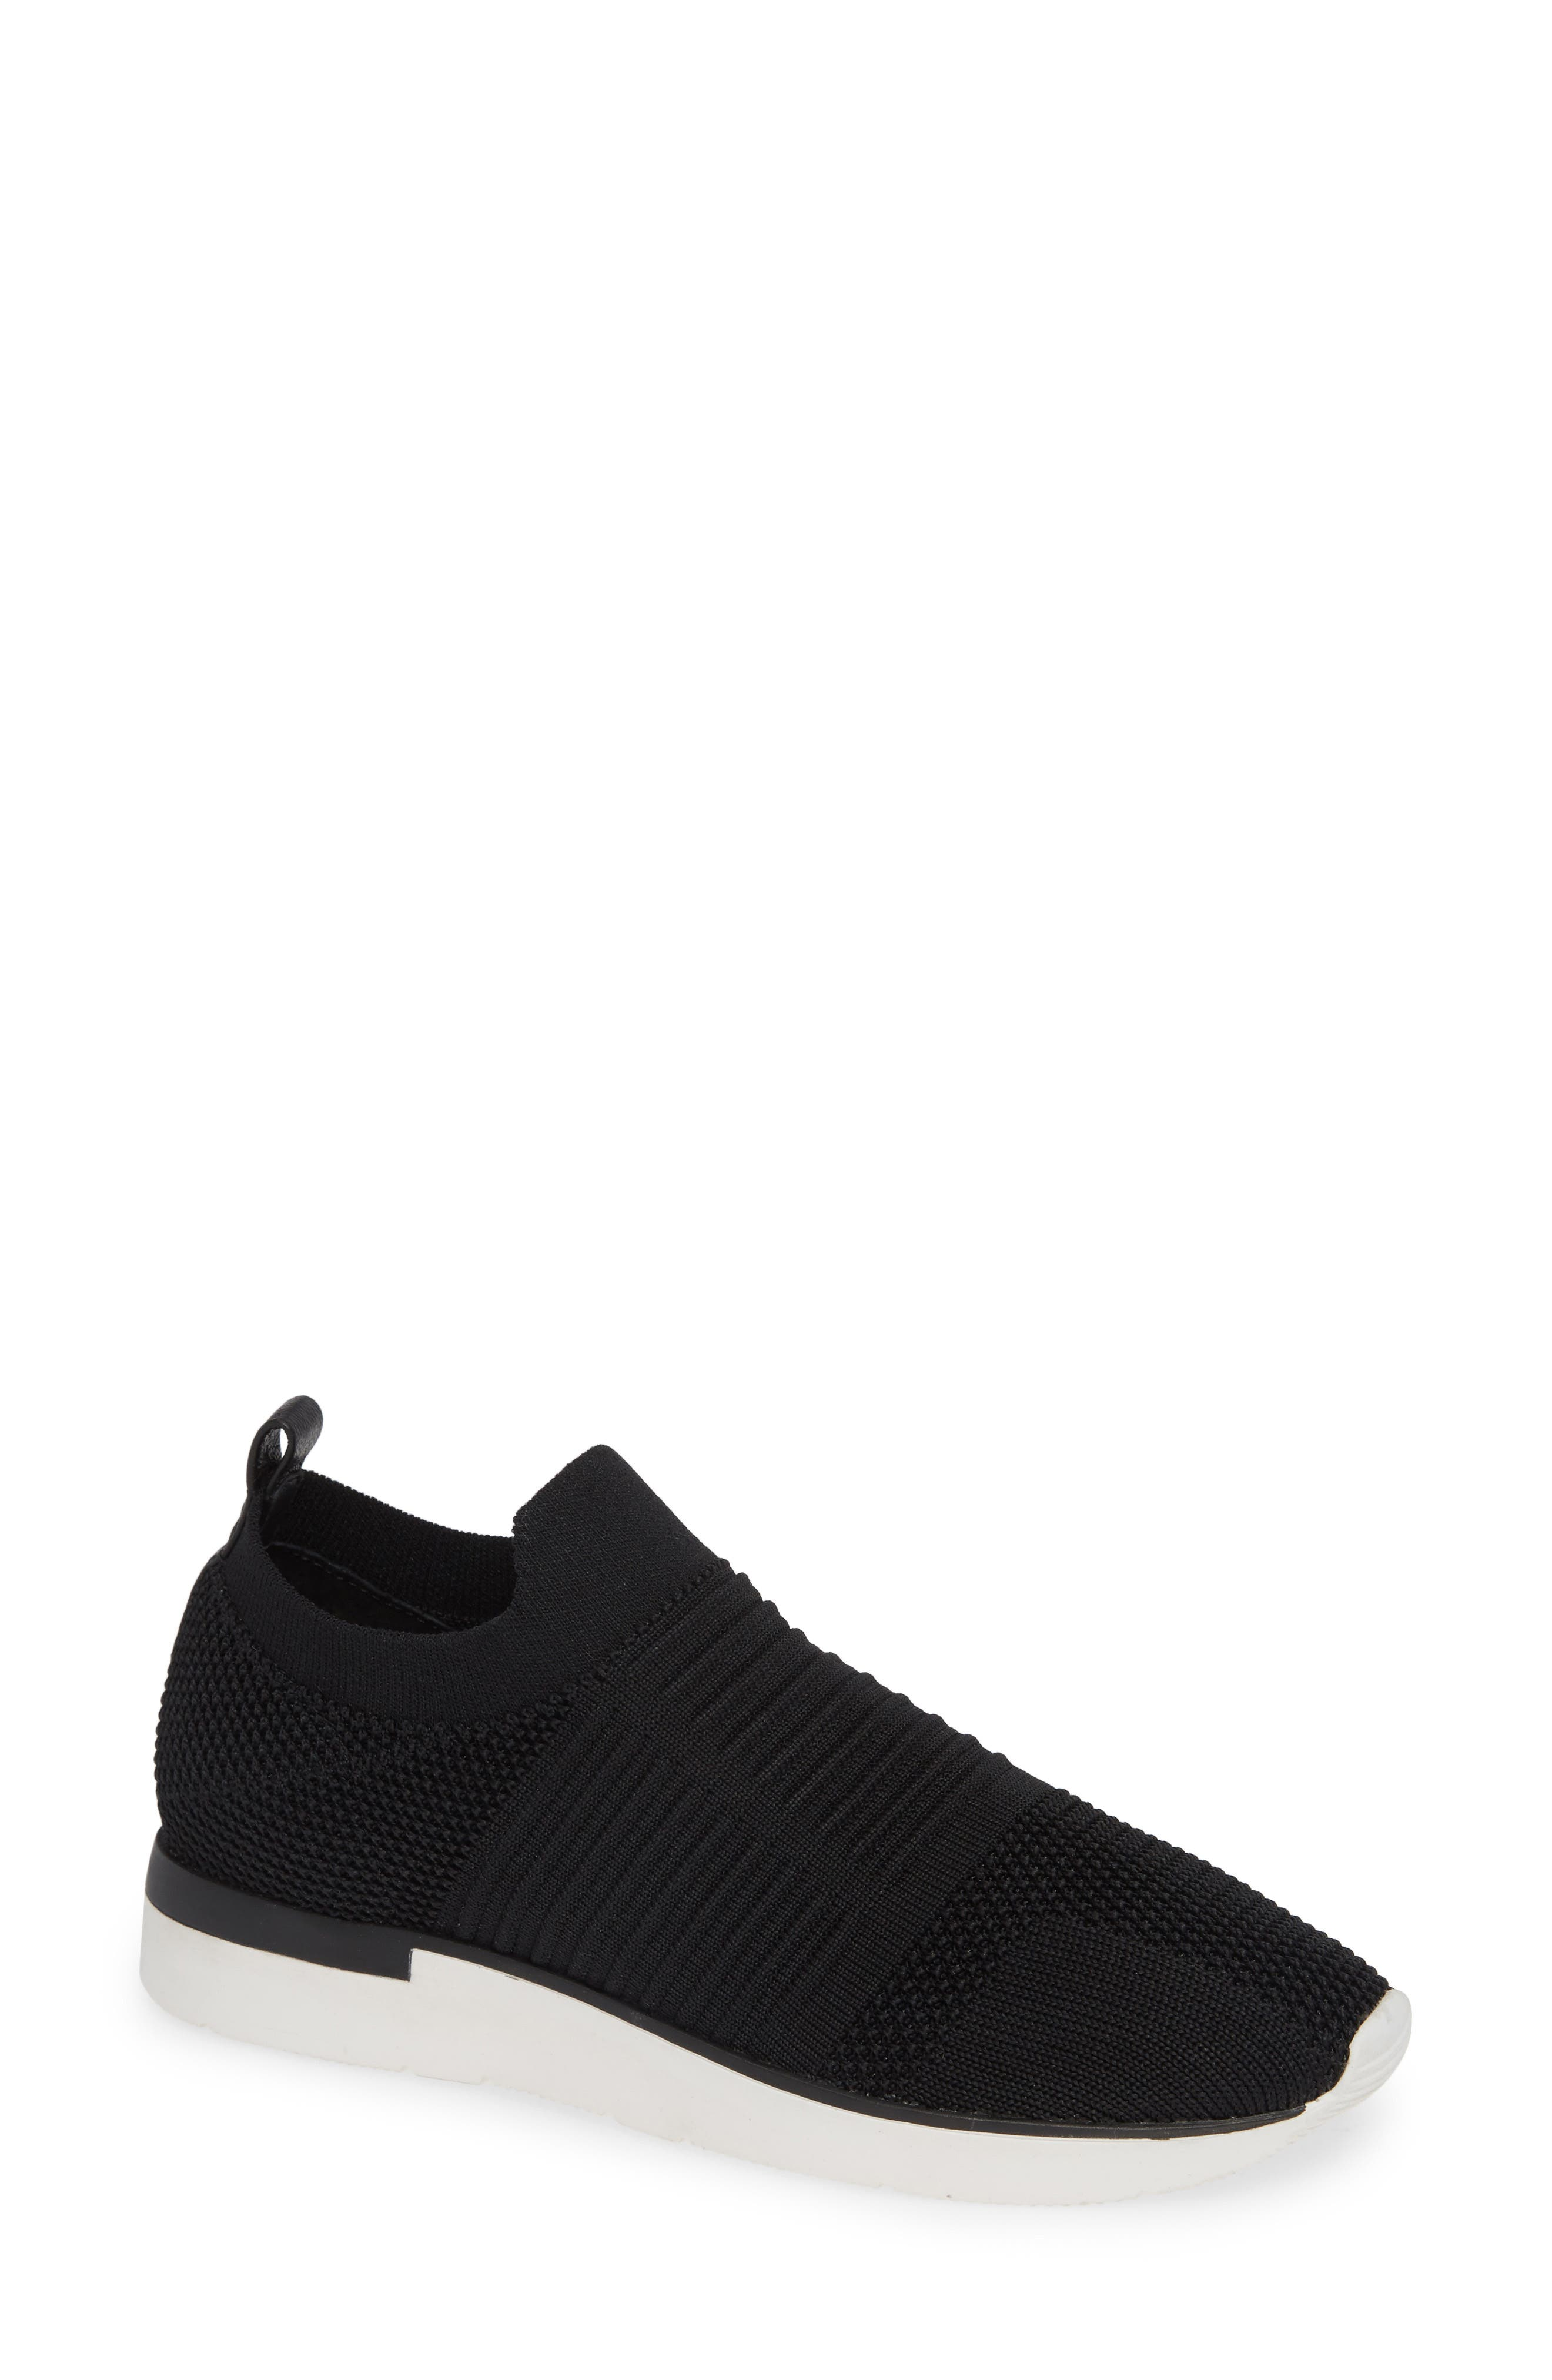 JSLIDES Great Sock Slip-On Sneaker in Black Knit Fabric